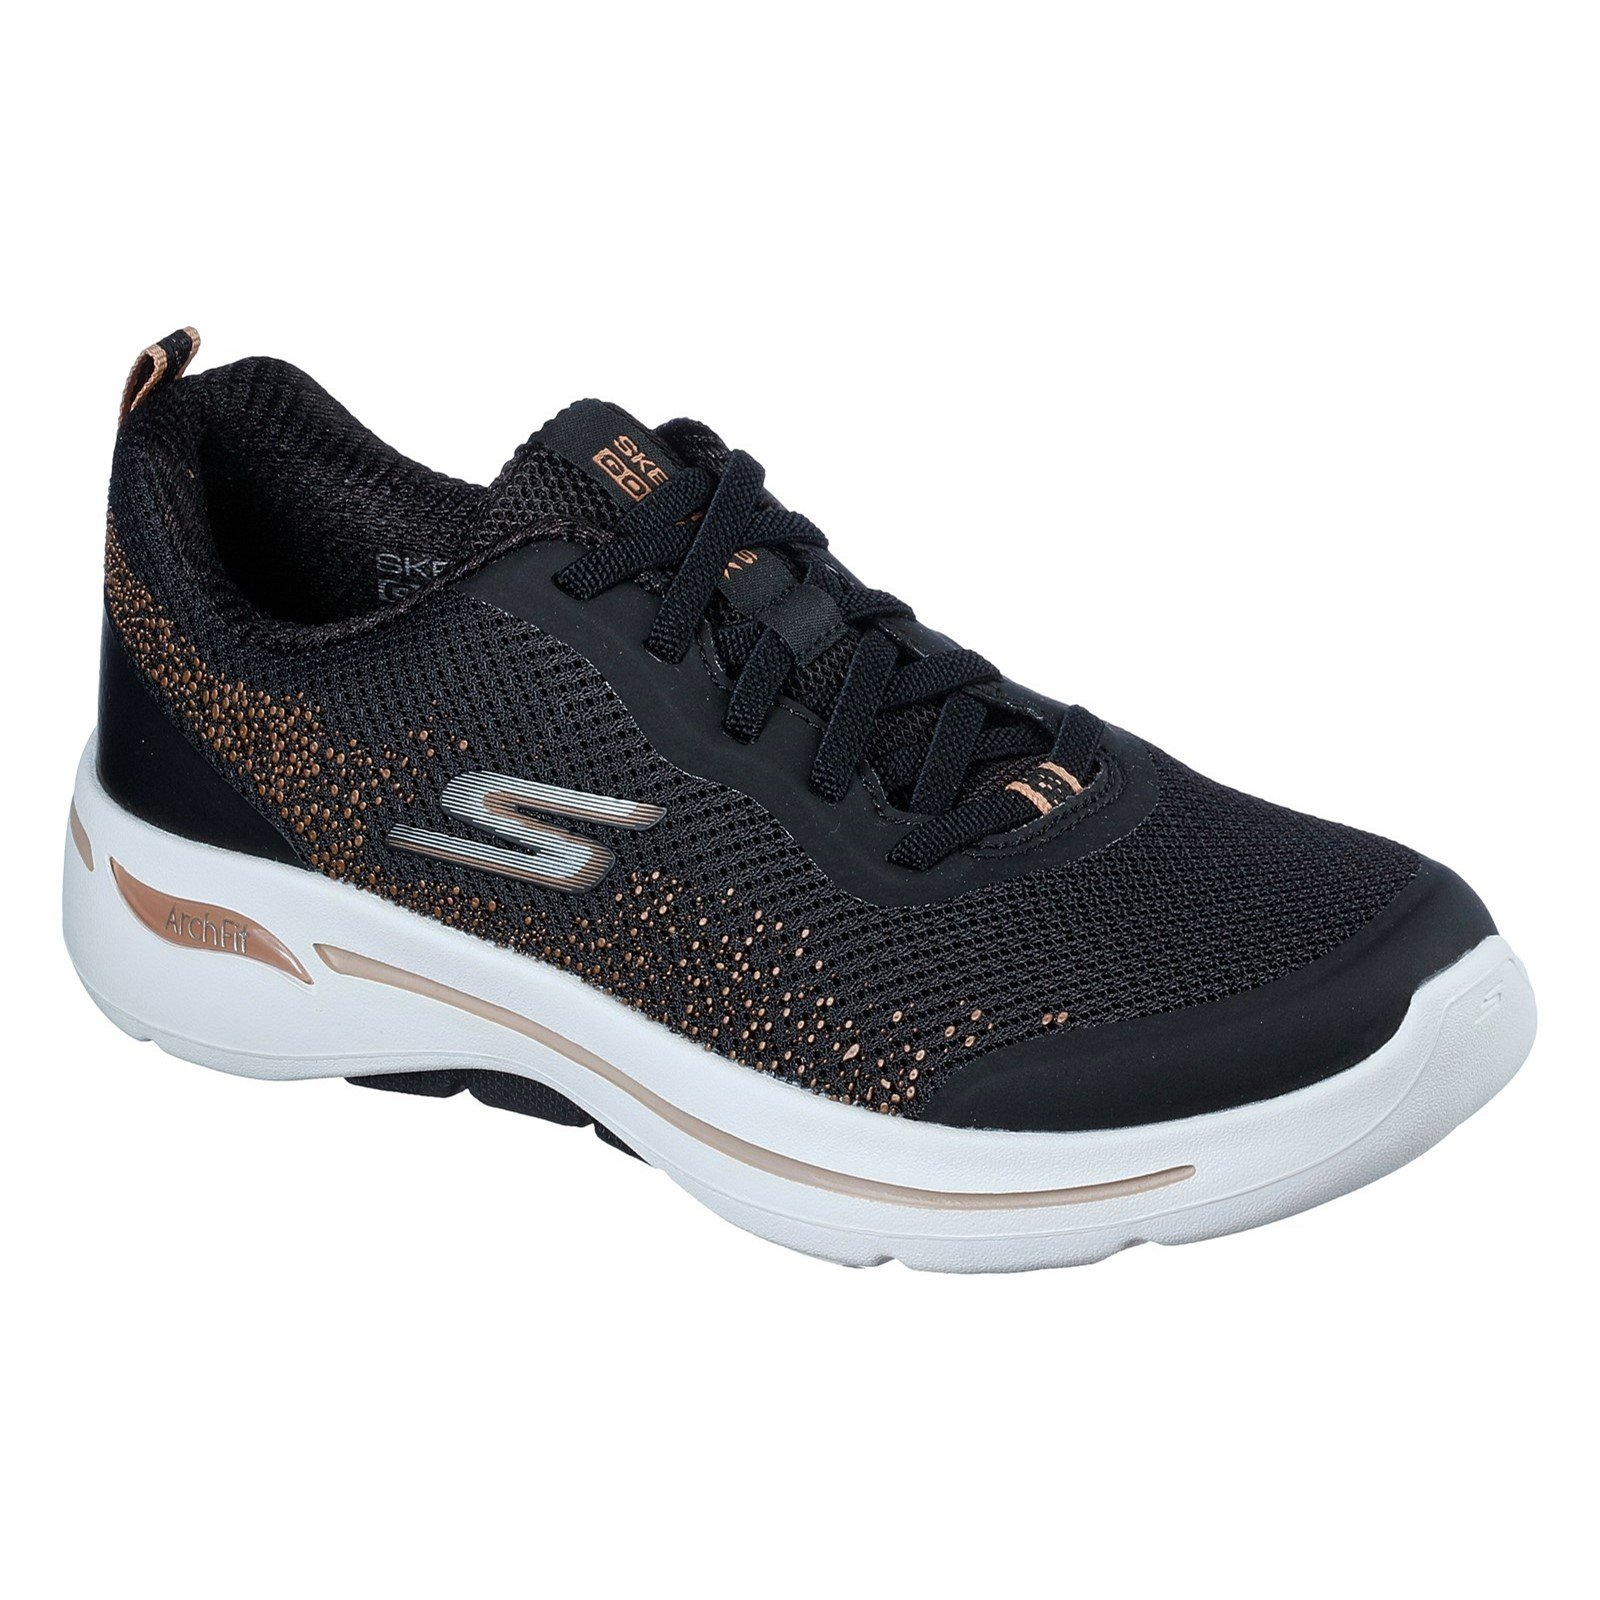 Skechers Women's Go Walk Arch Fit Flying Stars Trainer Various Colours 32841 - Black/Gold 6